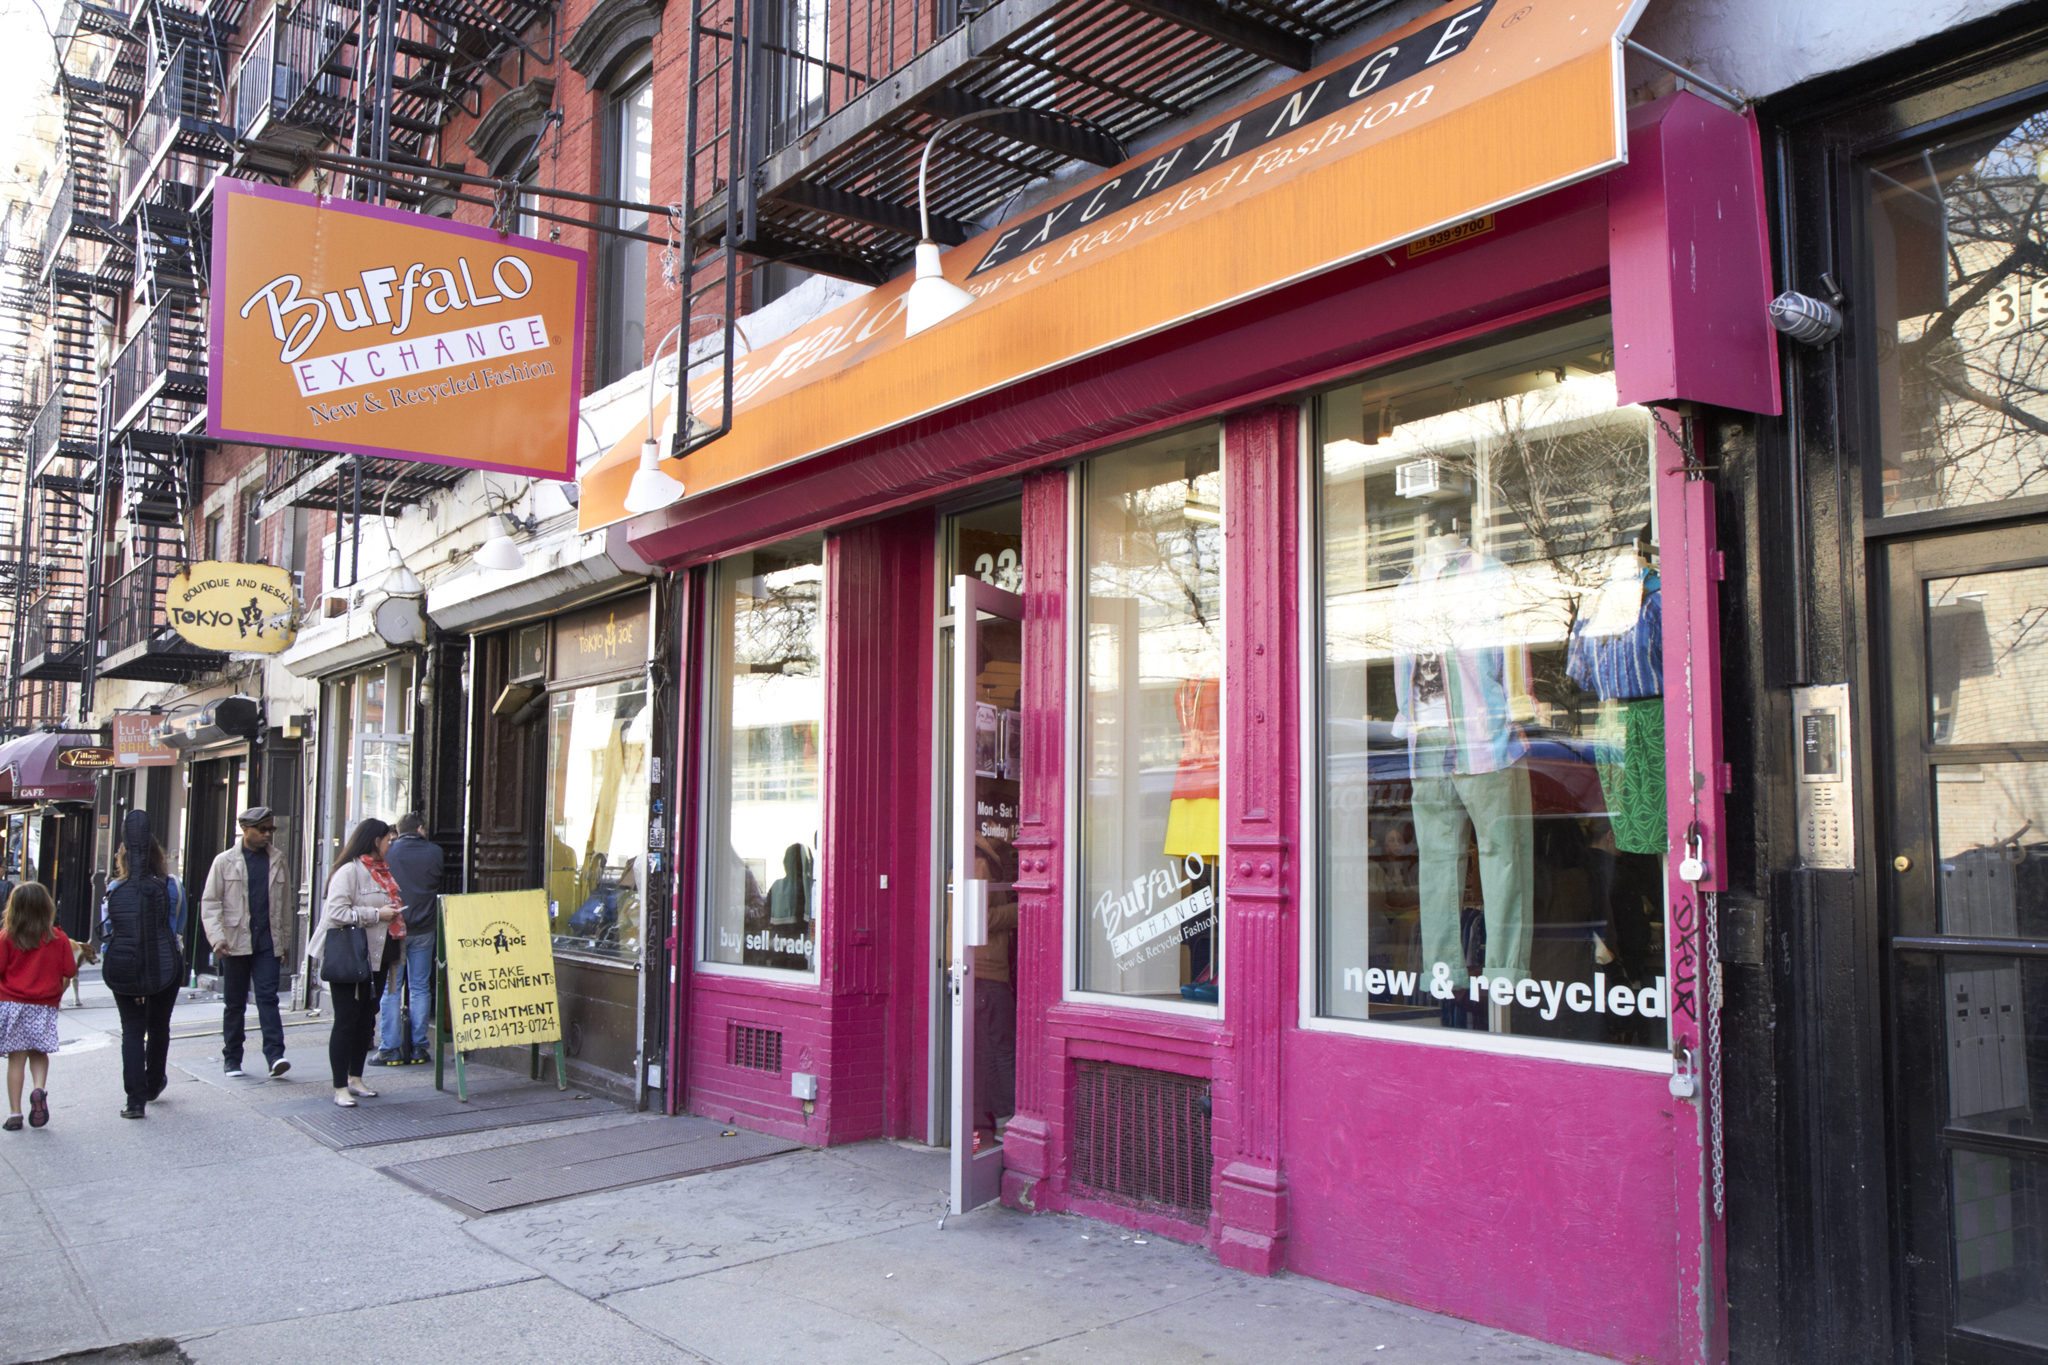 Best thrift stores in new york for secondhand shopping for A good jewelry store